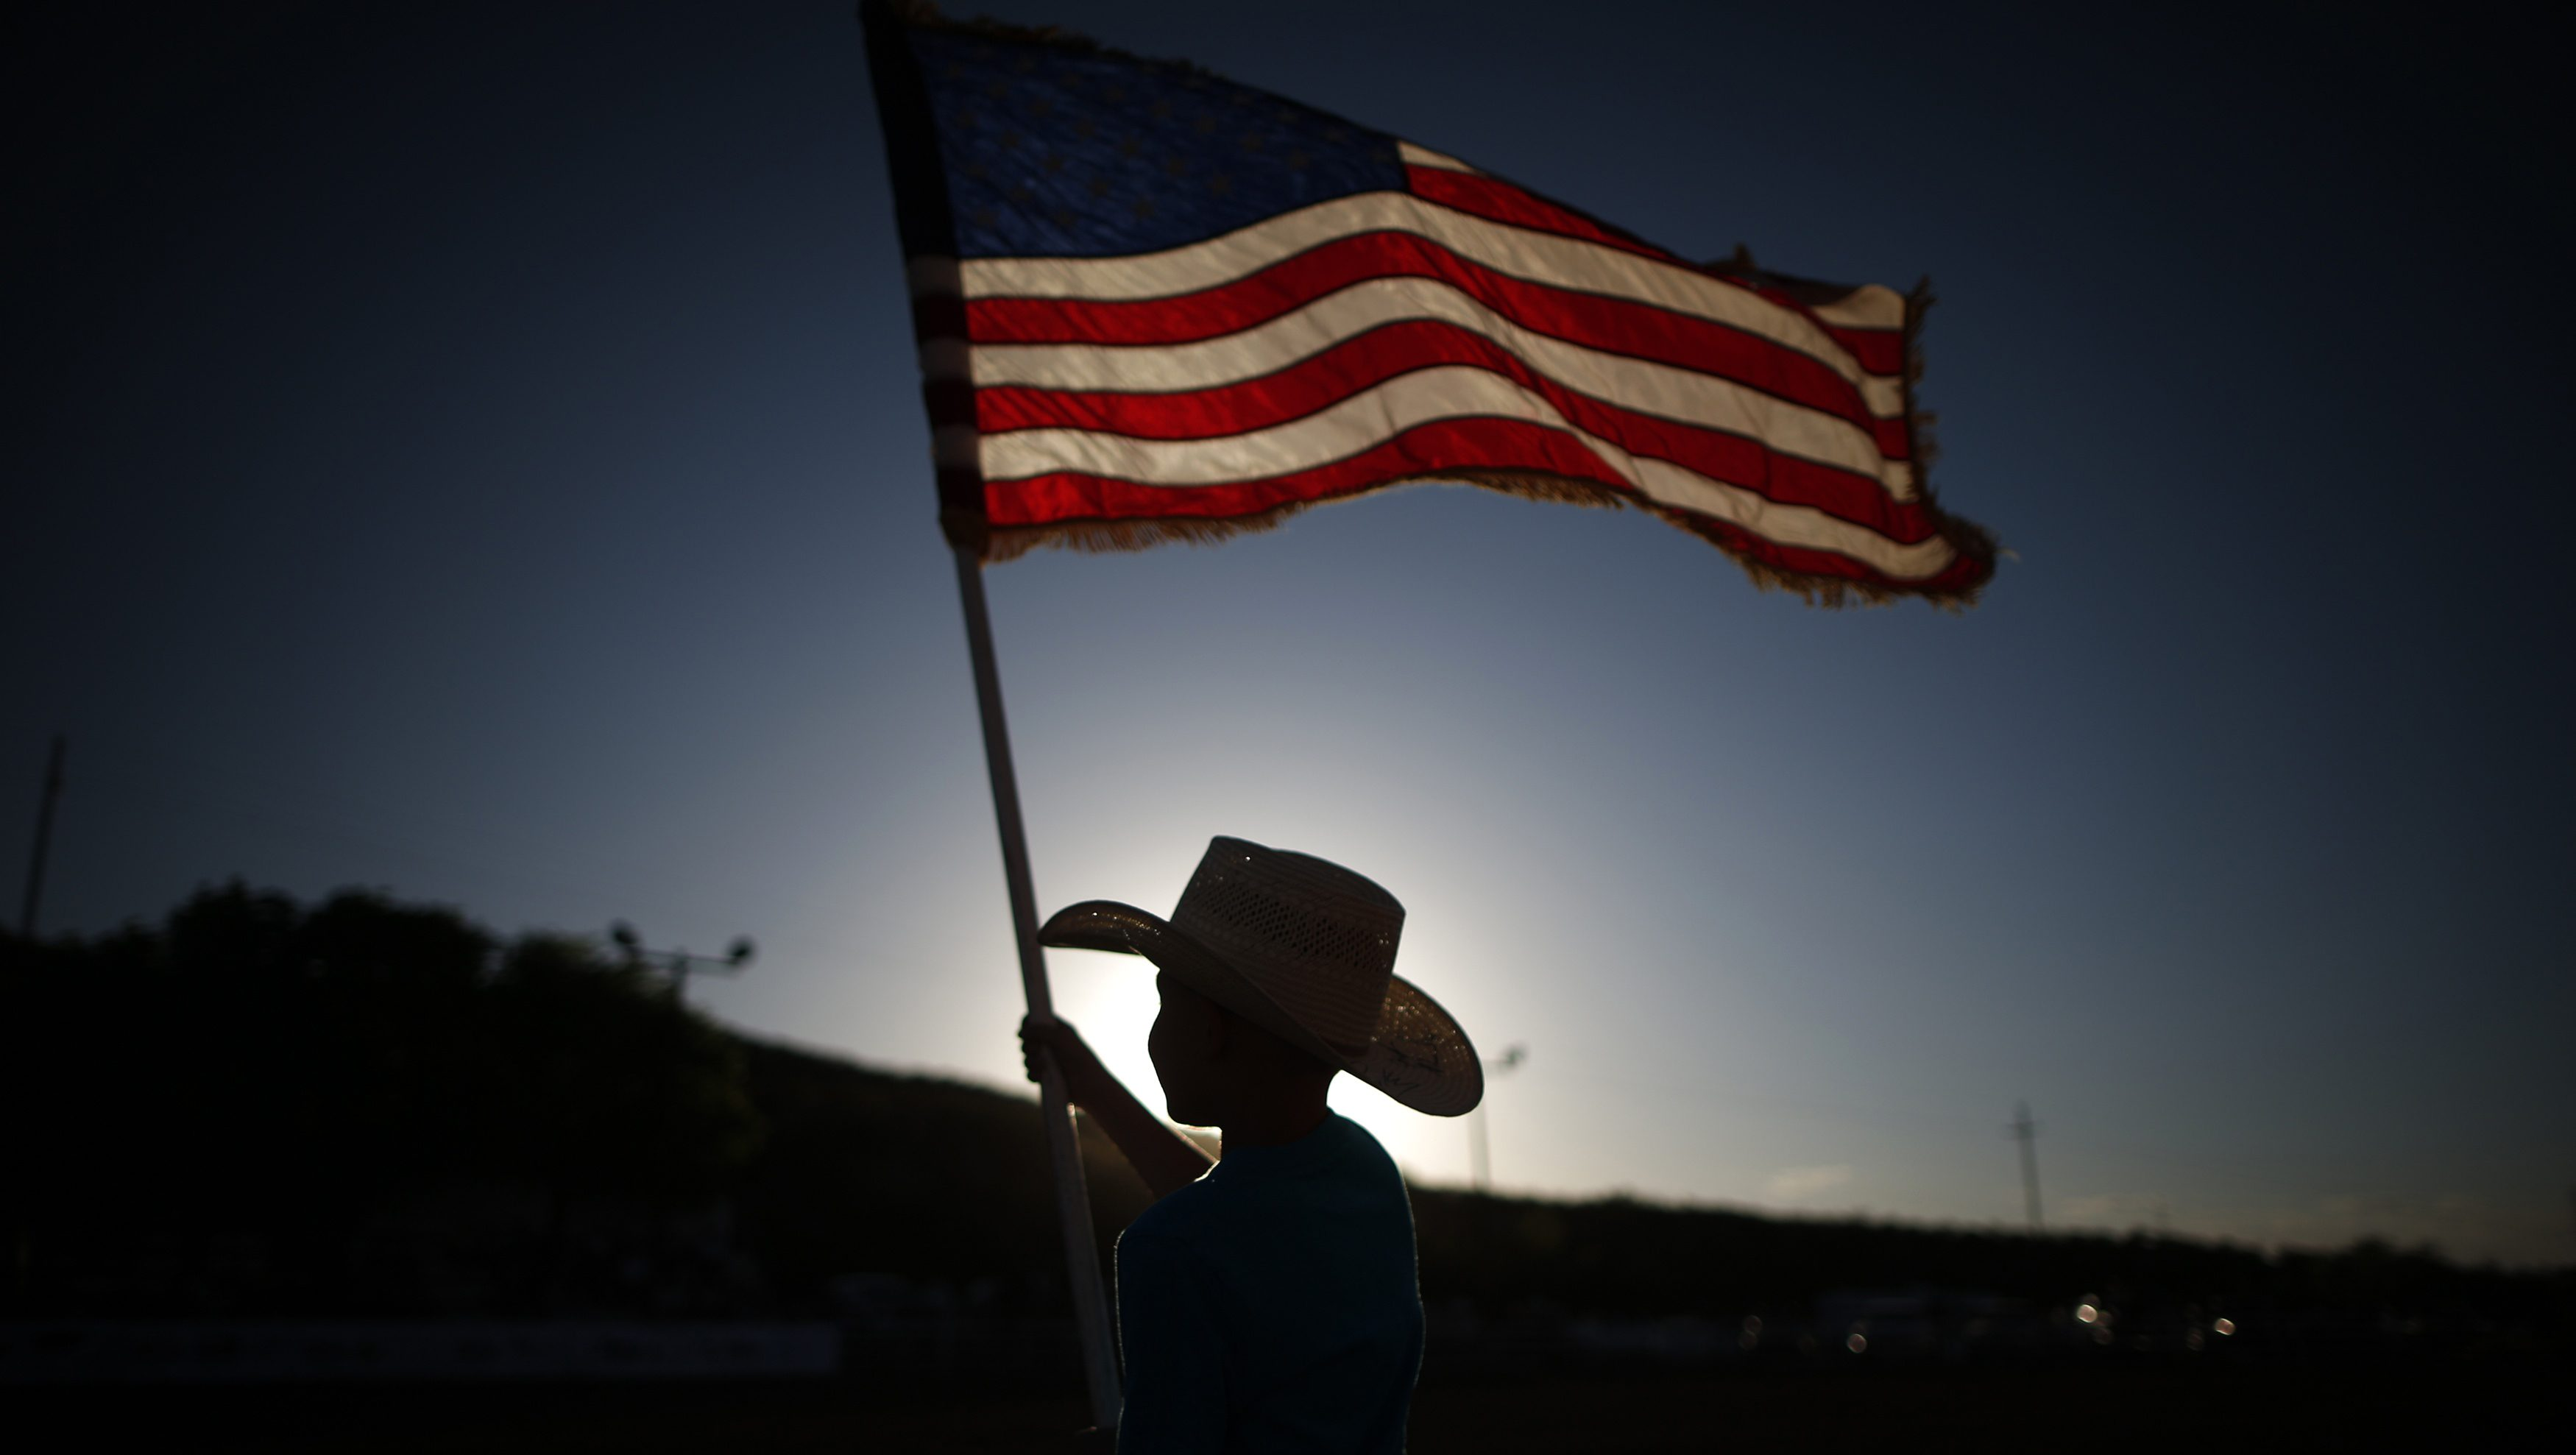 Esteban Edwards, 7, holds a U.S. flag at the rodeo in Truth or Consequences, New Mexico May 3, 2014.  The world's first purpose-built commercial space base and soon-to-be site of the first space flights with Sir Richard Branson's Virgin Galactic is near the town of Truth or Consequences in New Mexico. The inaugural flight into suborbital space should happen later this year and the first astronauts, who have made reservations and paid $250,000 for the flight, should follow a month later. While it's not clear what the economic impact will be, many agree that Spaceport America should inject new energy into the town. Picture taken May 3, 2014.      REUTERS/Lucy Nicholson (UNITED STATES - Tags: BUSINESS SOCIETY SCIENCE TECHNOLOGY TPX IMAGES OF THE DAY)  ATTENTION EDITORS: PICTURE 40 OF 40 FOR PACKAGE 'TRUTH OR CONSEQUENCES - SPACEPORT'. TO FIND ALL IMAGES SEARCH 'CONSEQUENCES LUCY' - RTR3OAR0